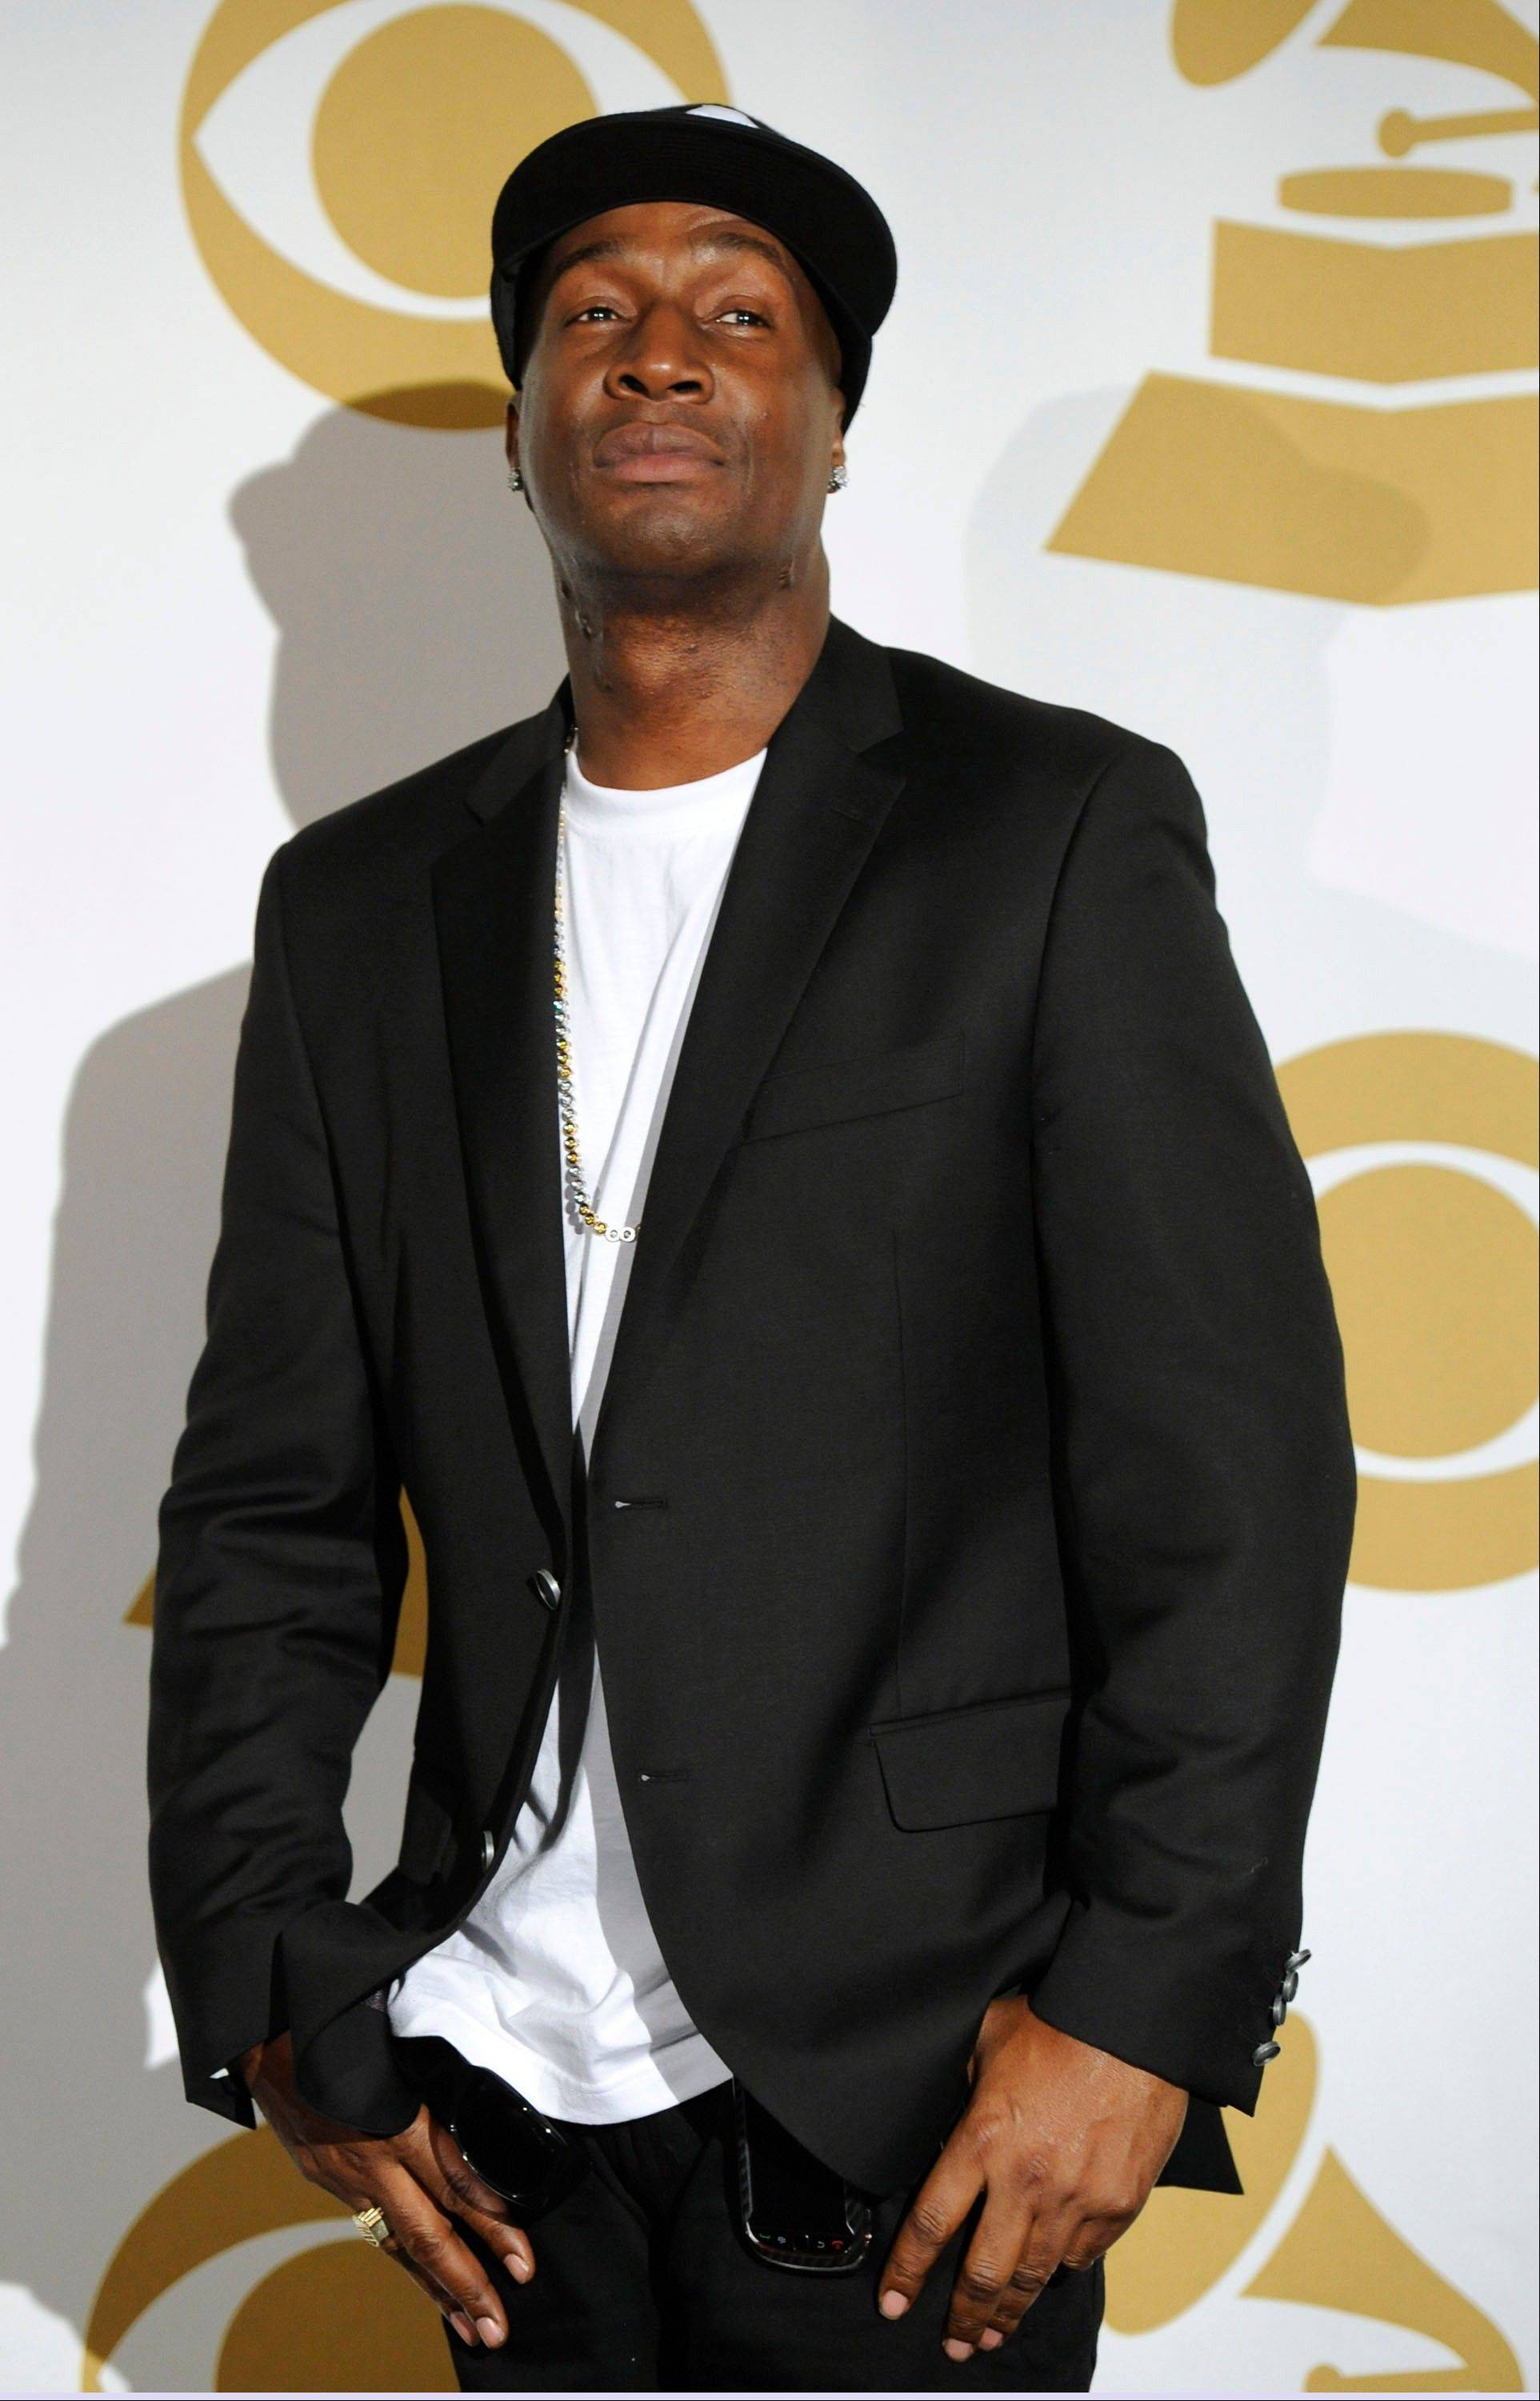 Grandmaster Flash backstage Wednesday at the Grammy Nominations Concert in Los Angeles.